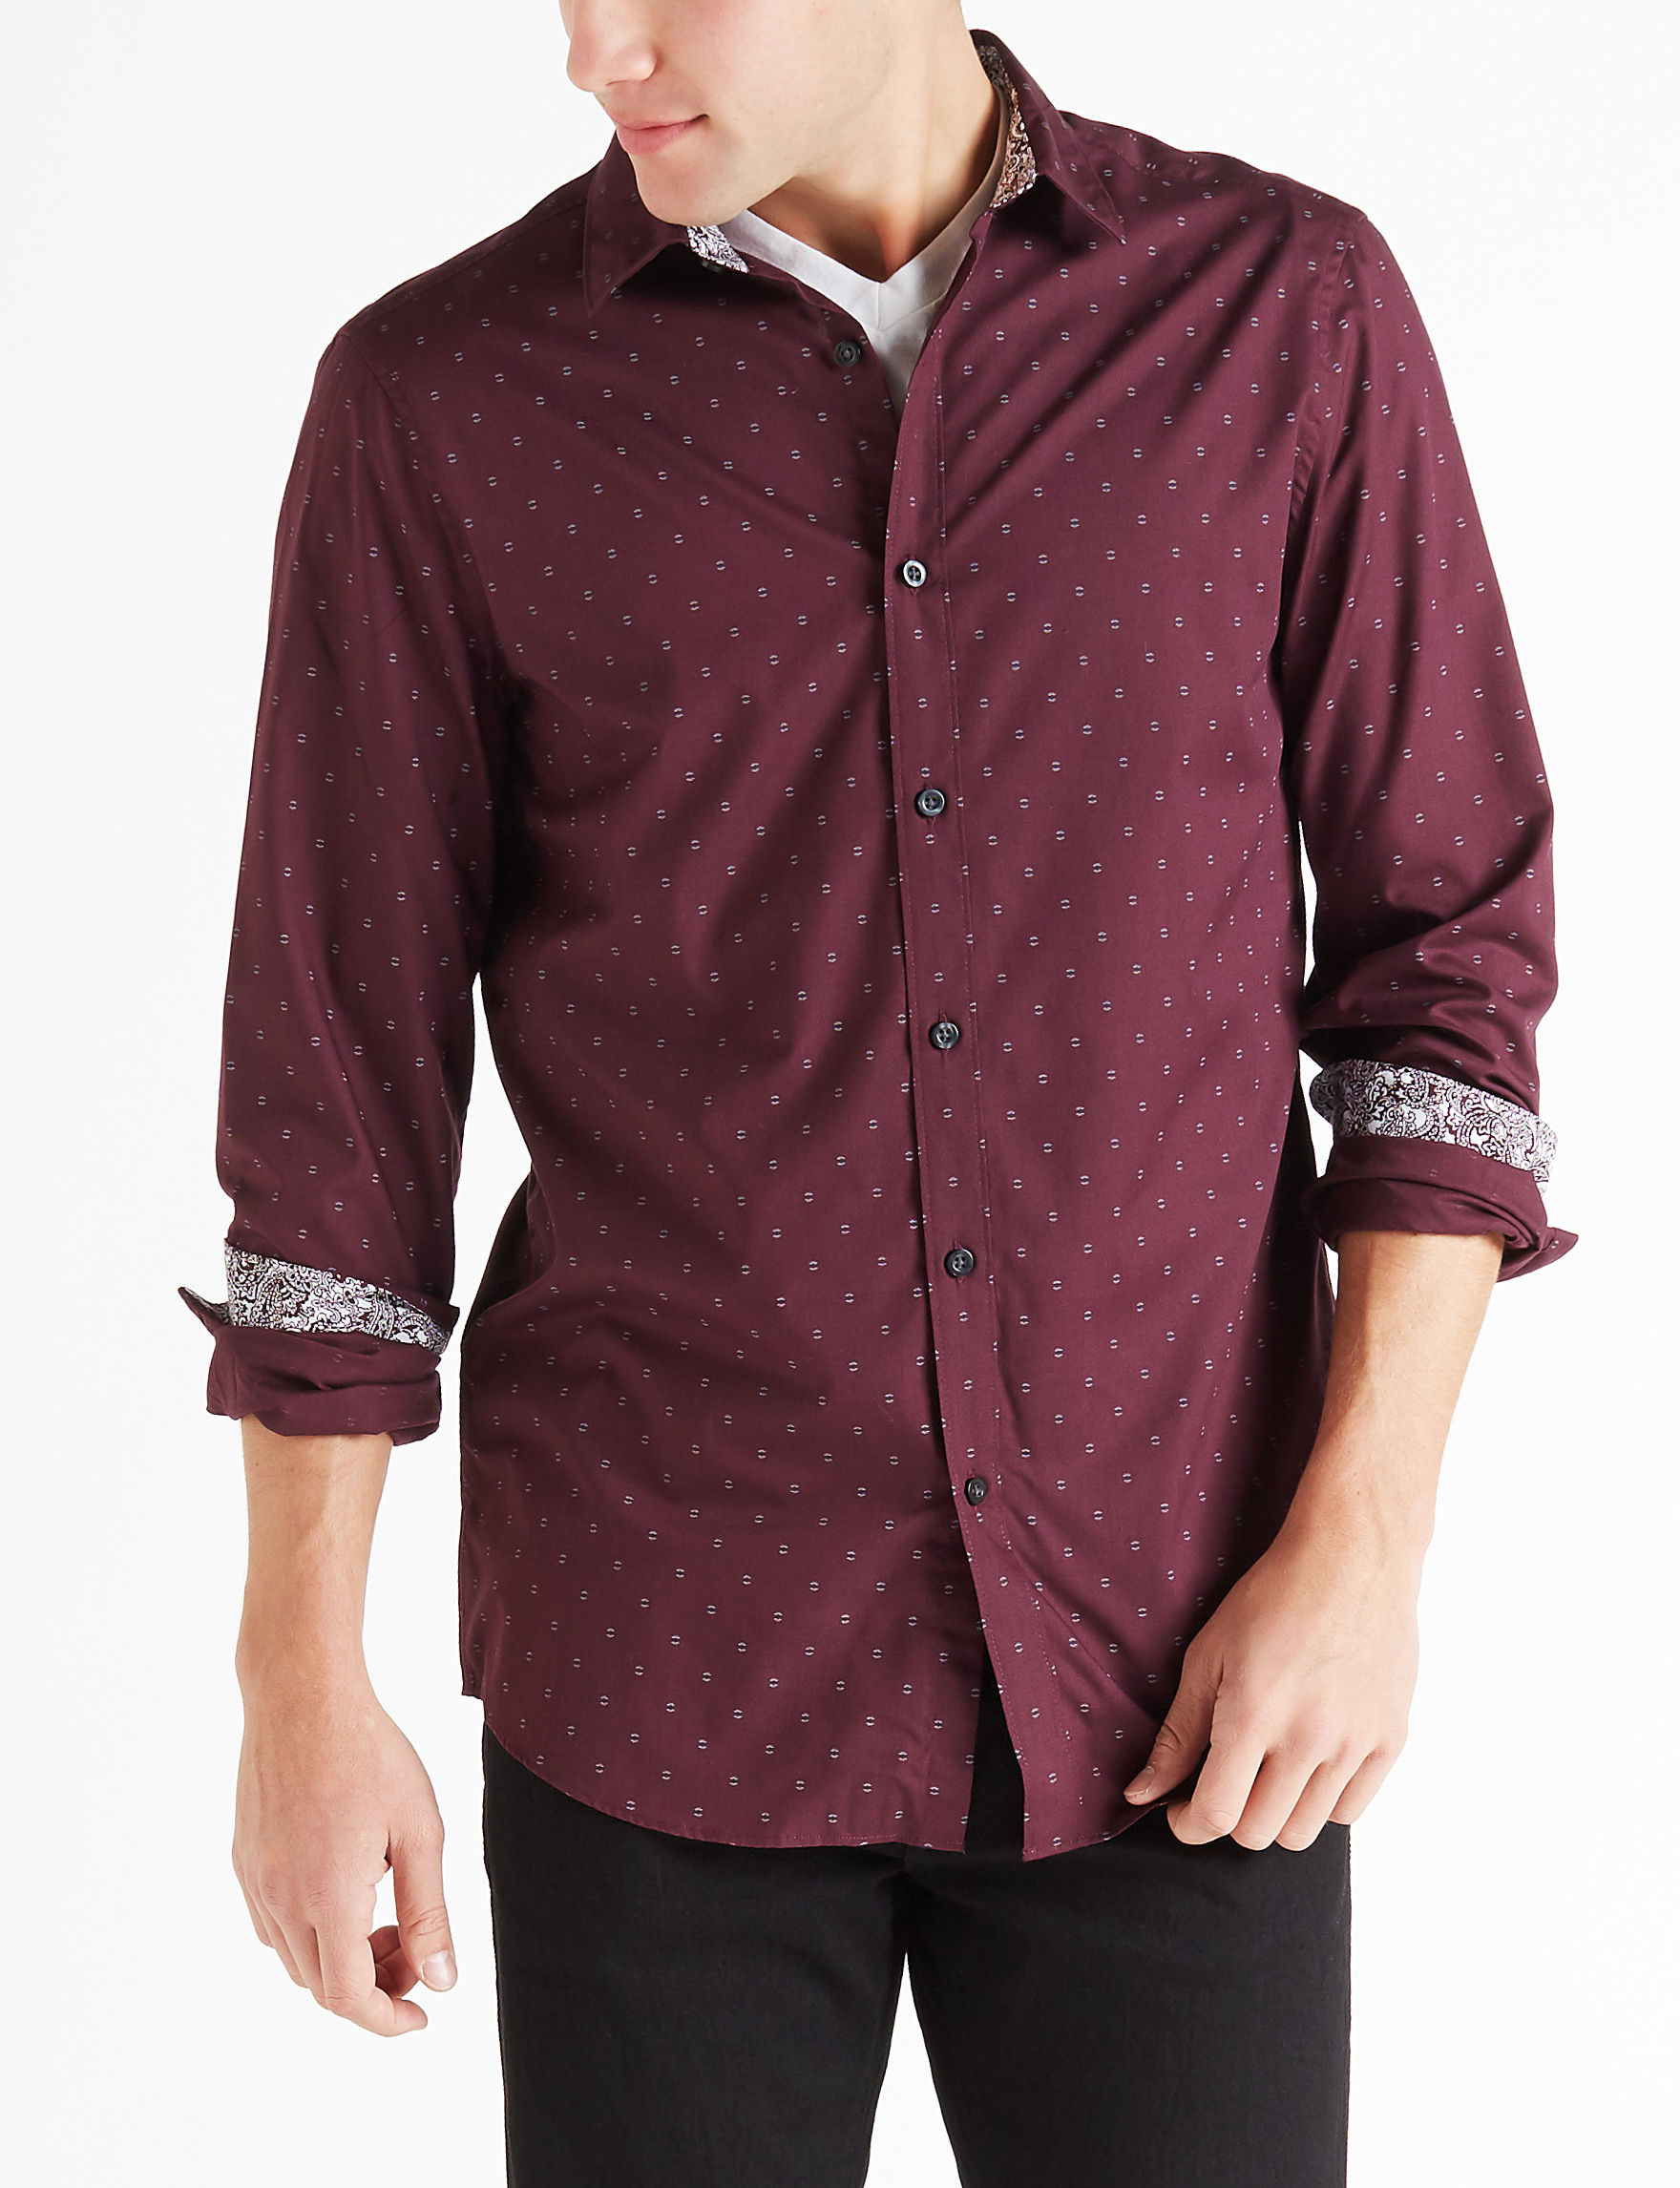 Axist Wine Casual Button Down Shirts